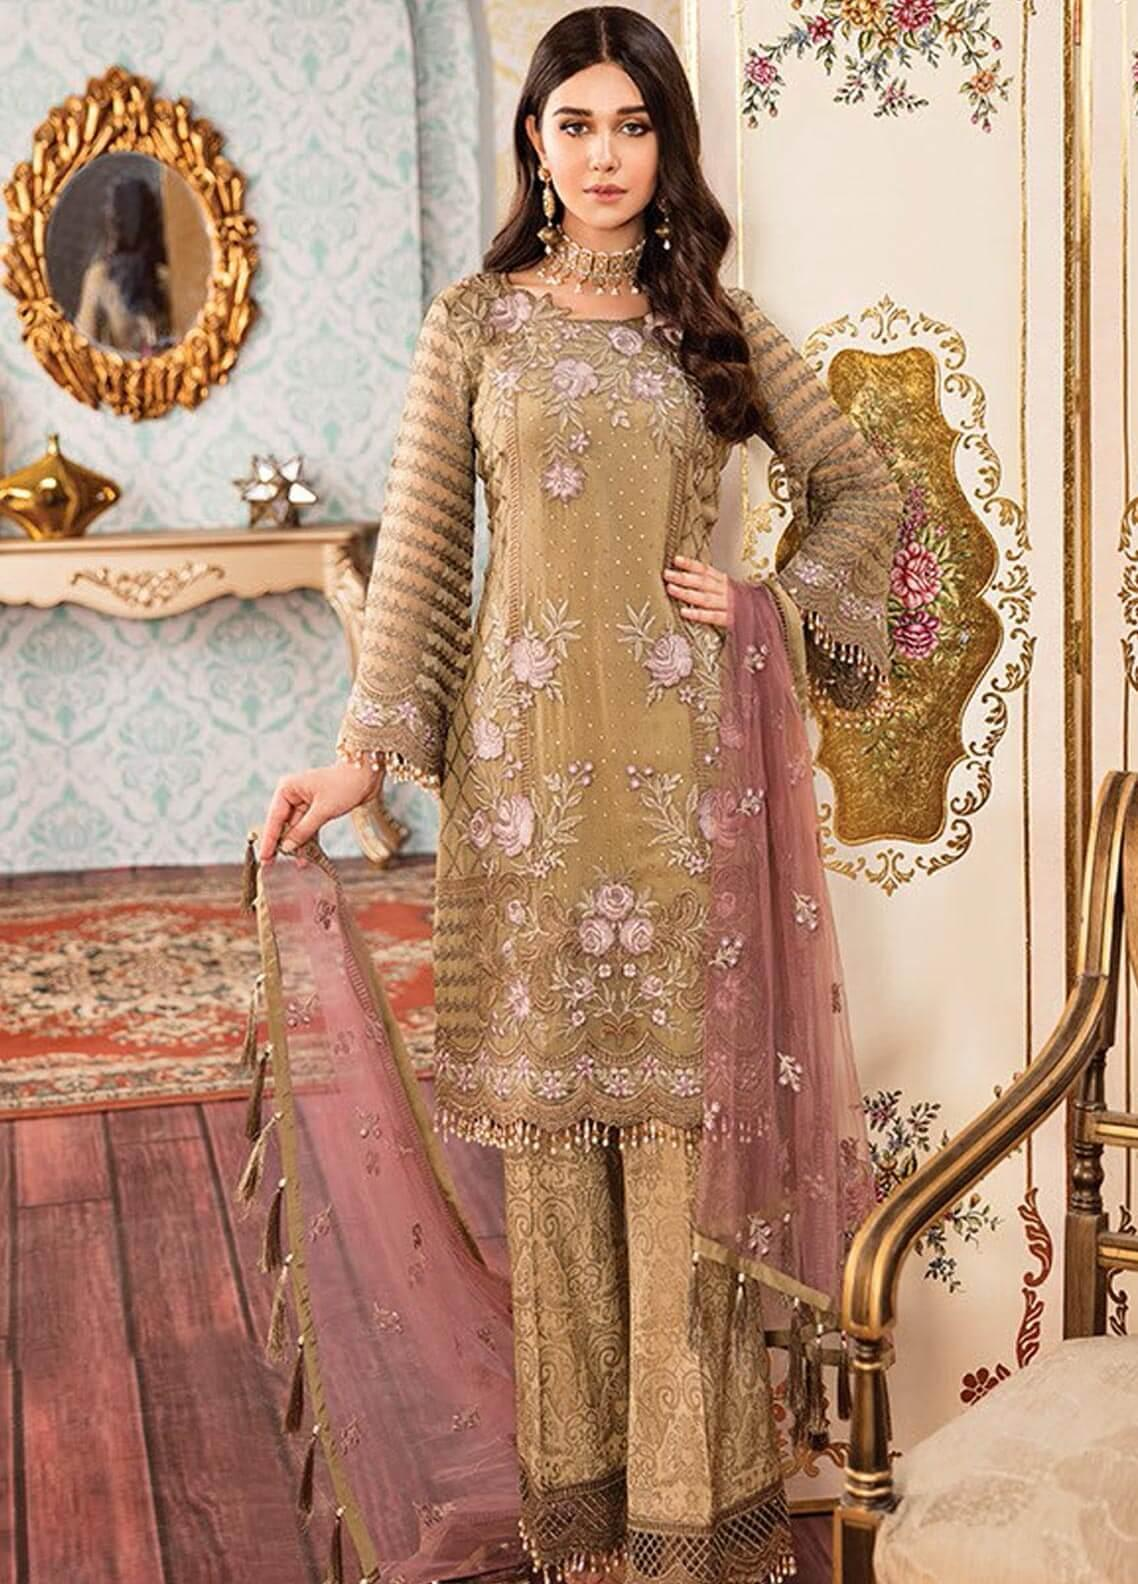 Kuch Khas By Flossie Embroidered Chiffon Unstitched 3 Piece Suit FKK19-C4 03 MUD HONEY - Luxury Collection